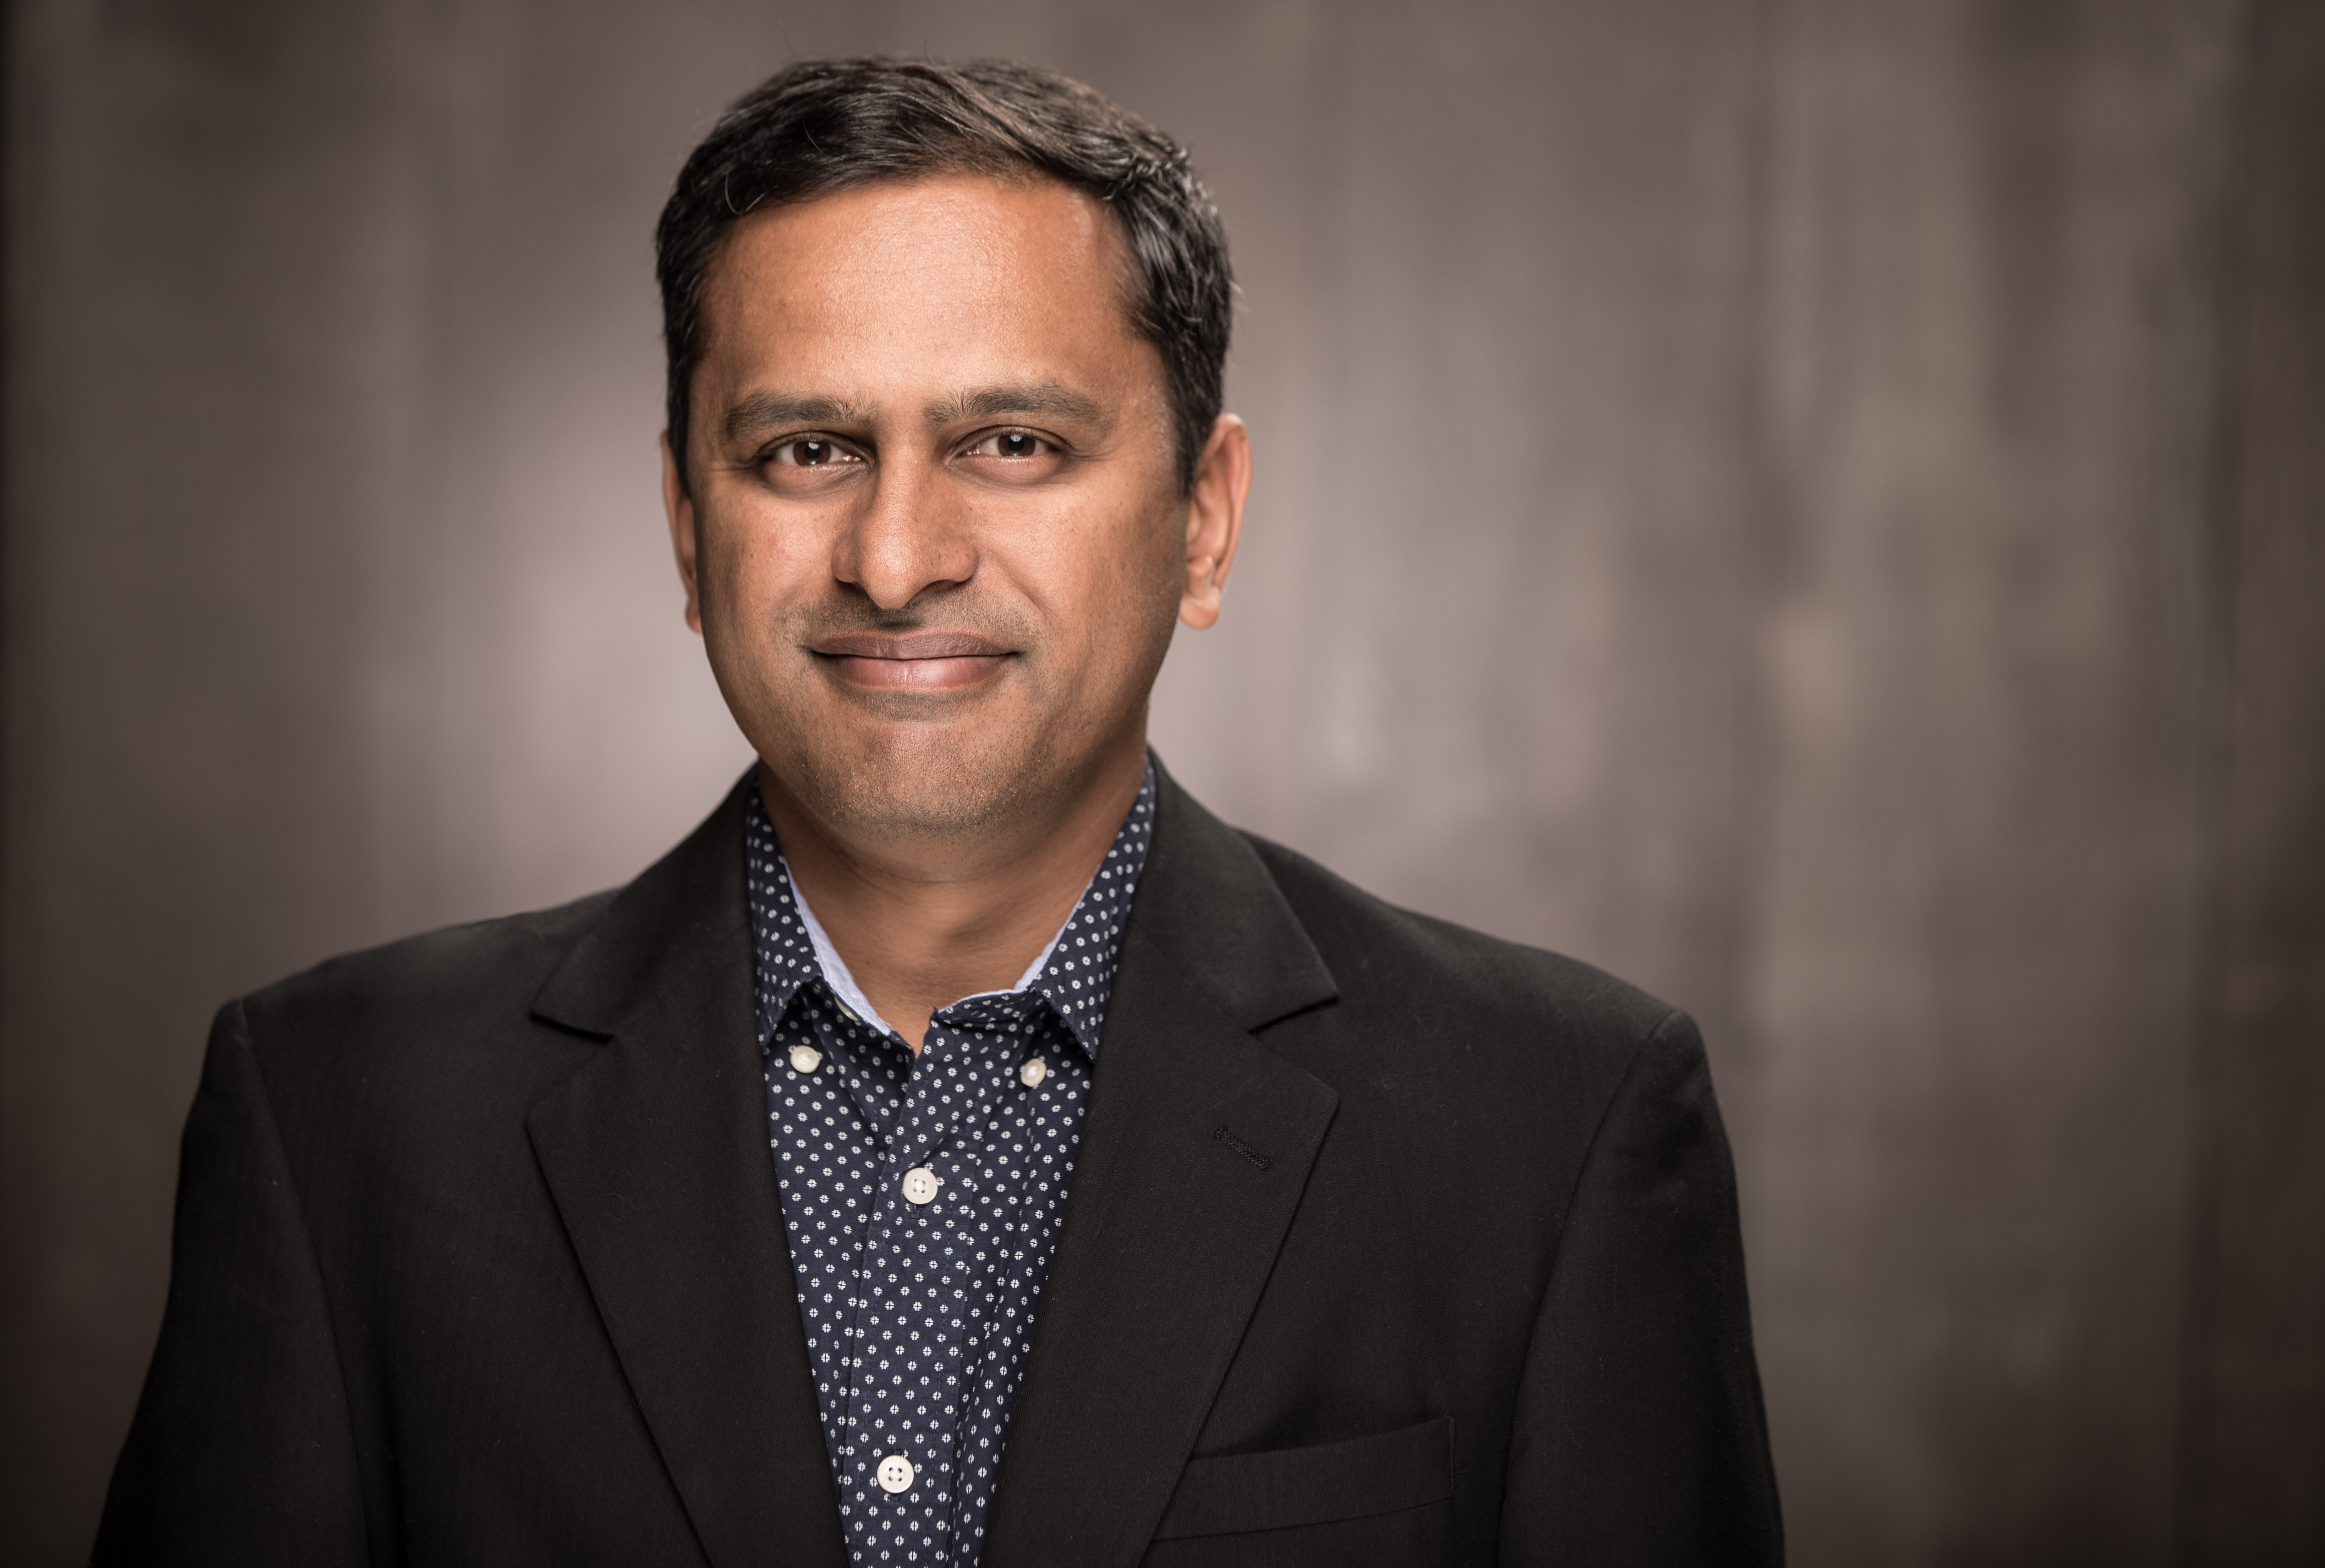 Awake CEO Rahul Kashyap, who previously served as tech chief at cybersecurity firm Cylance.